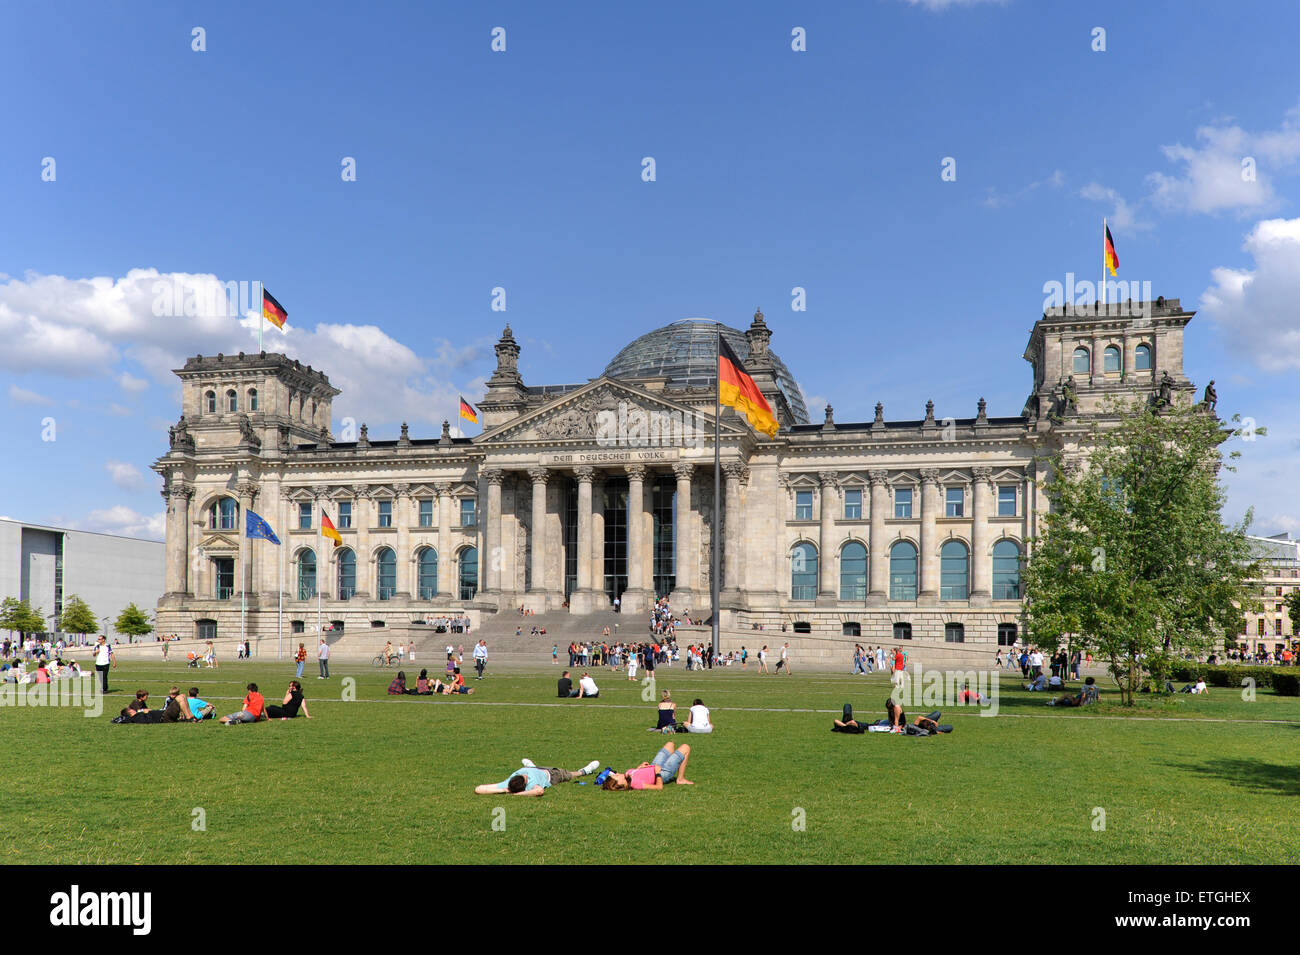 Meadow with people relaxing in front of Reichstagsgebaeude German Bundestag, Parliament Berlin, Germany, Europe - Stock Image